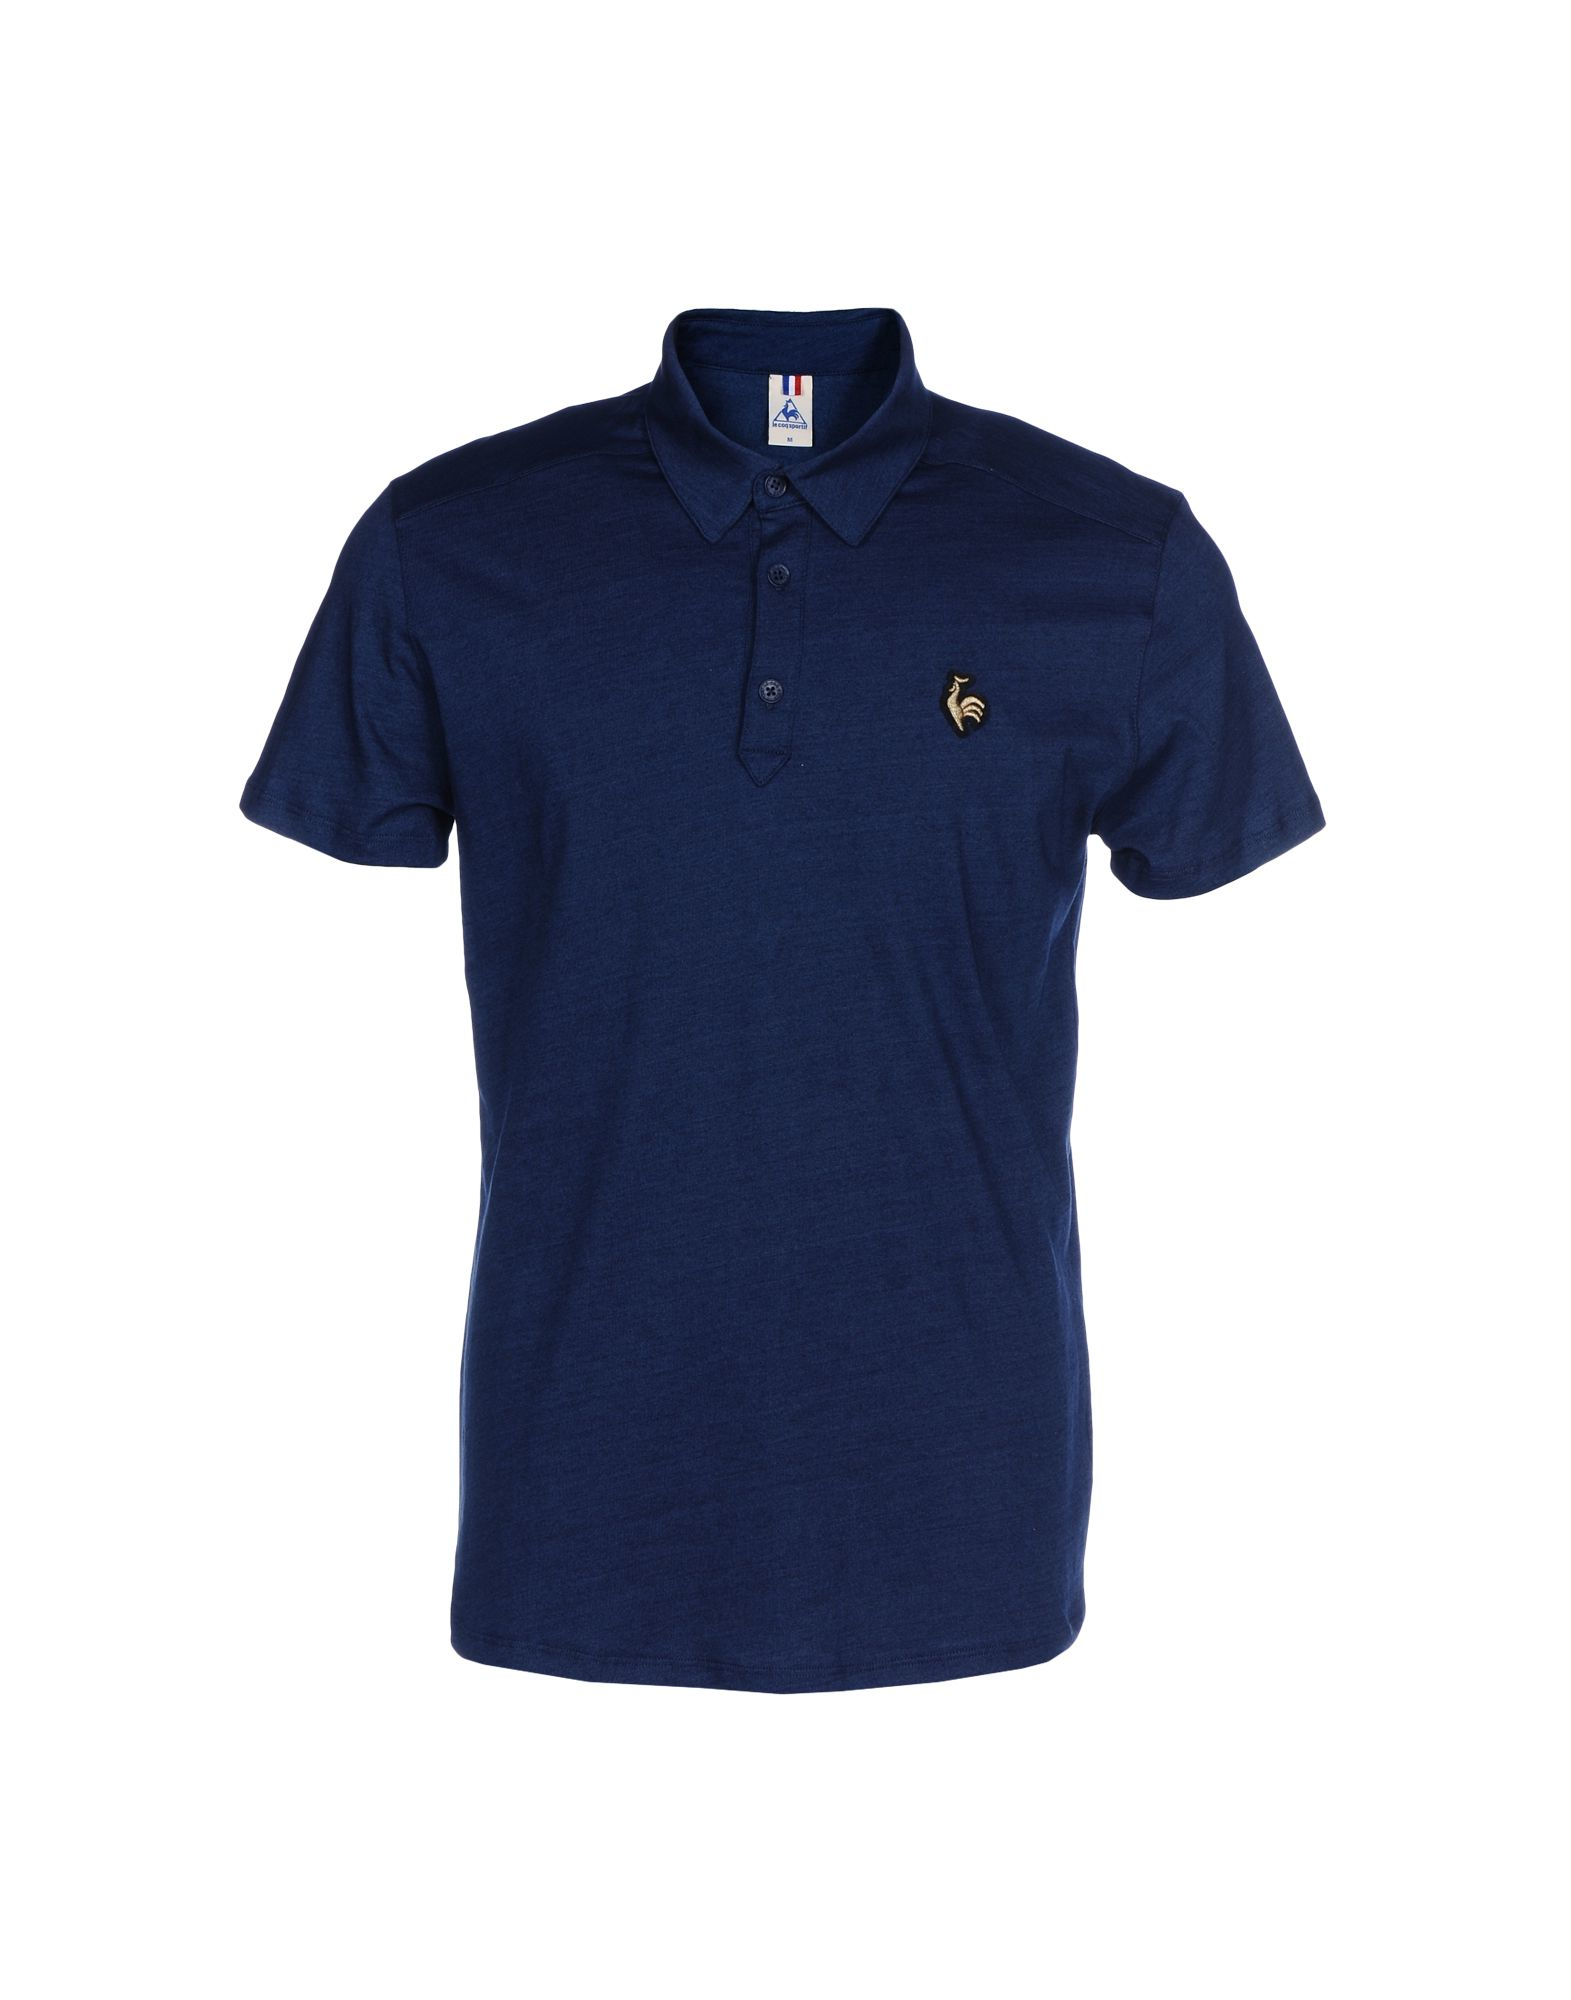 b9023f0987 Le Coq Sportif Polo Shirt in Blue for Men - Lyst